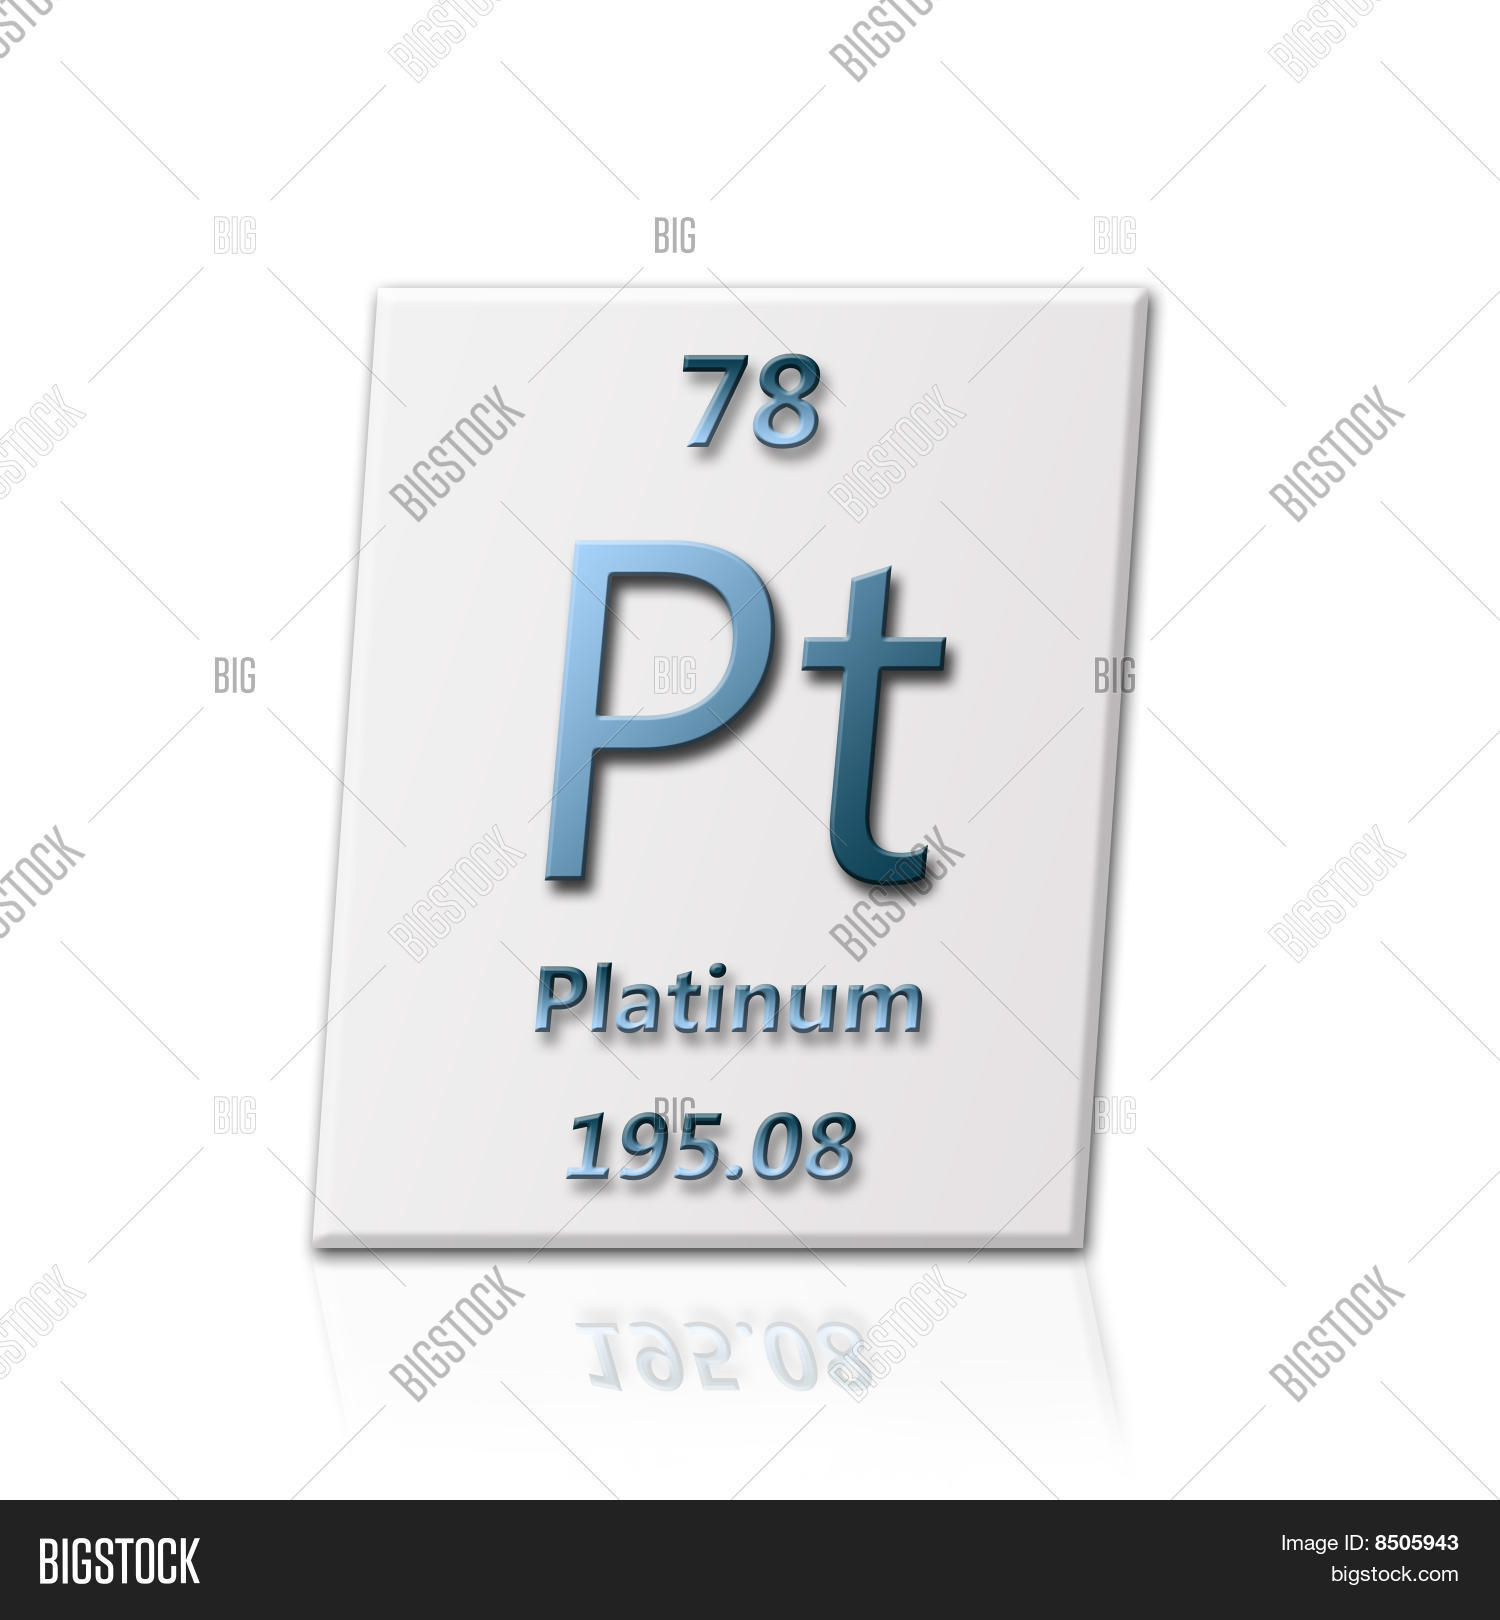 Chemical Element Image Photo Free Trial Bigstock